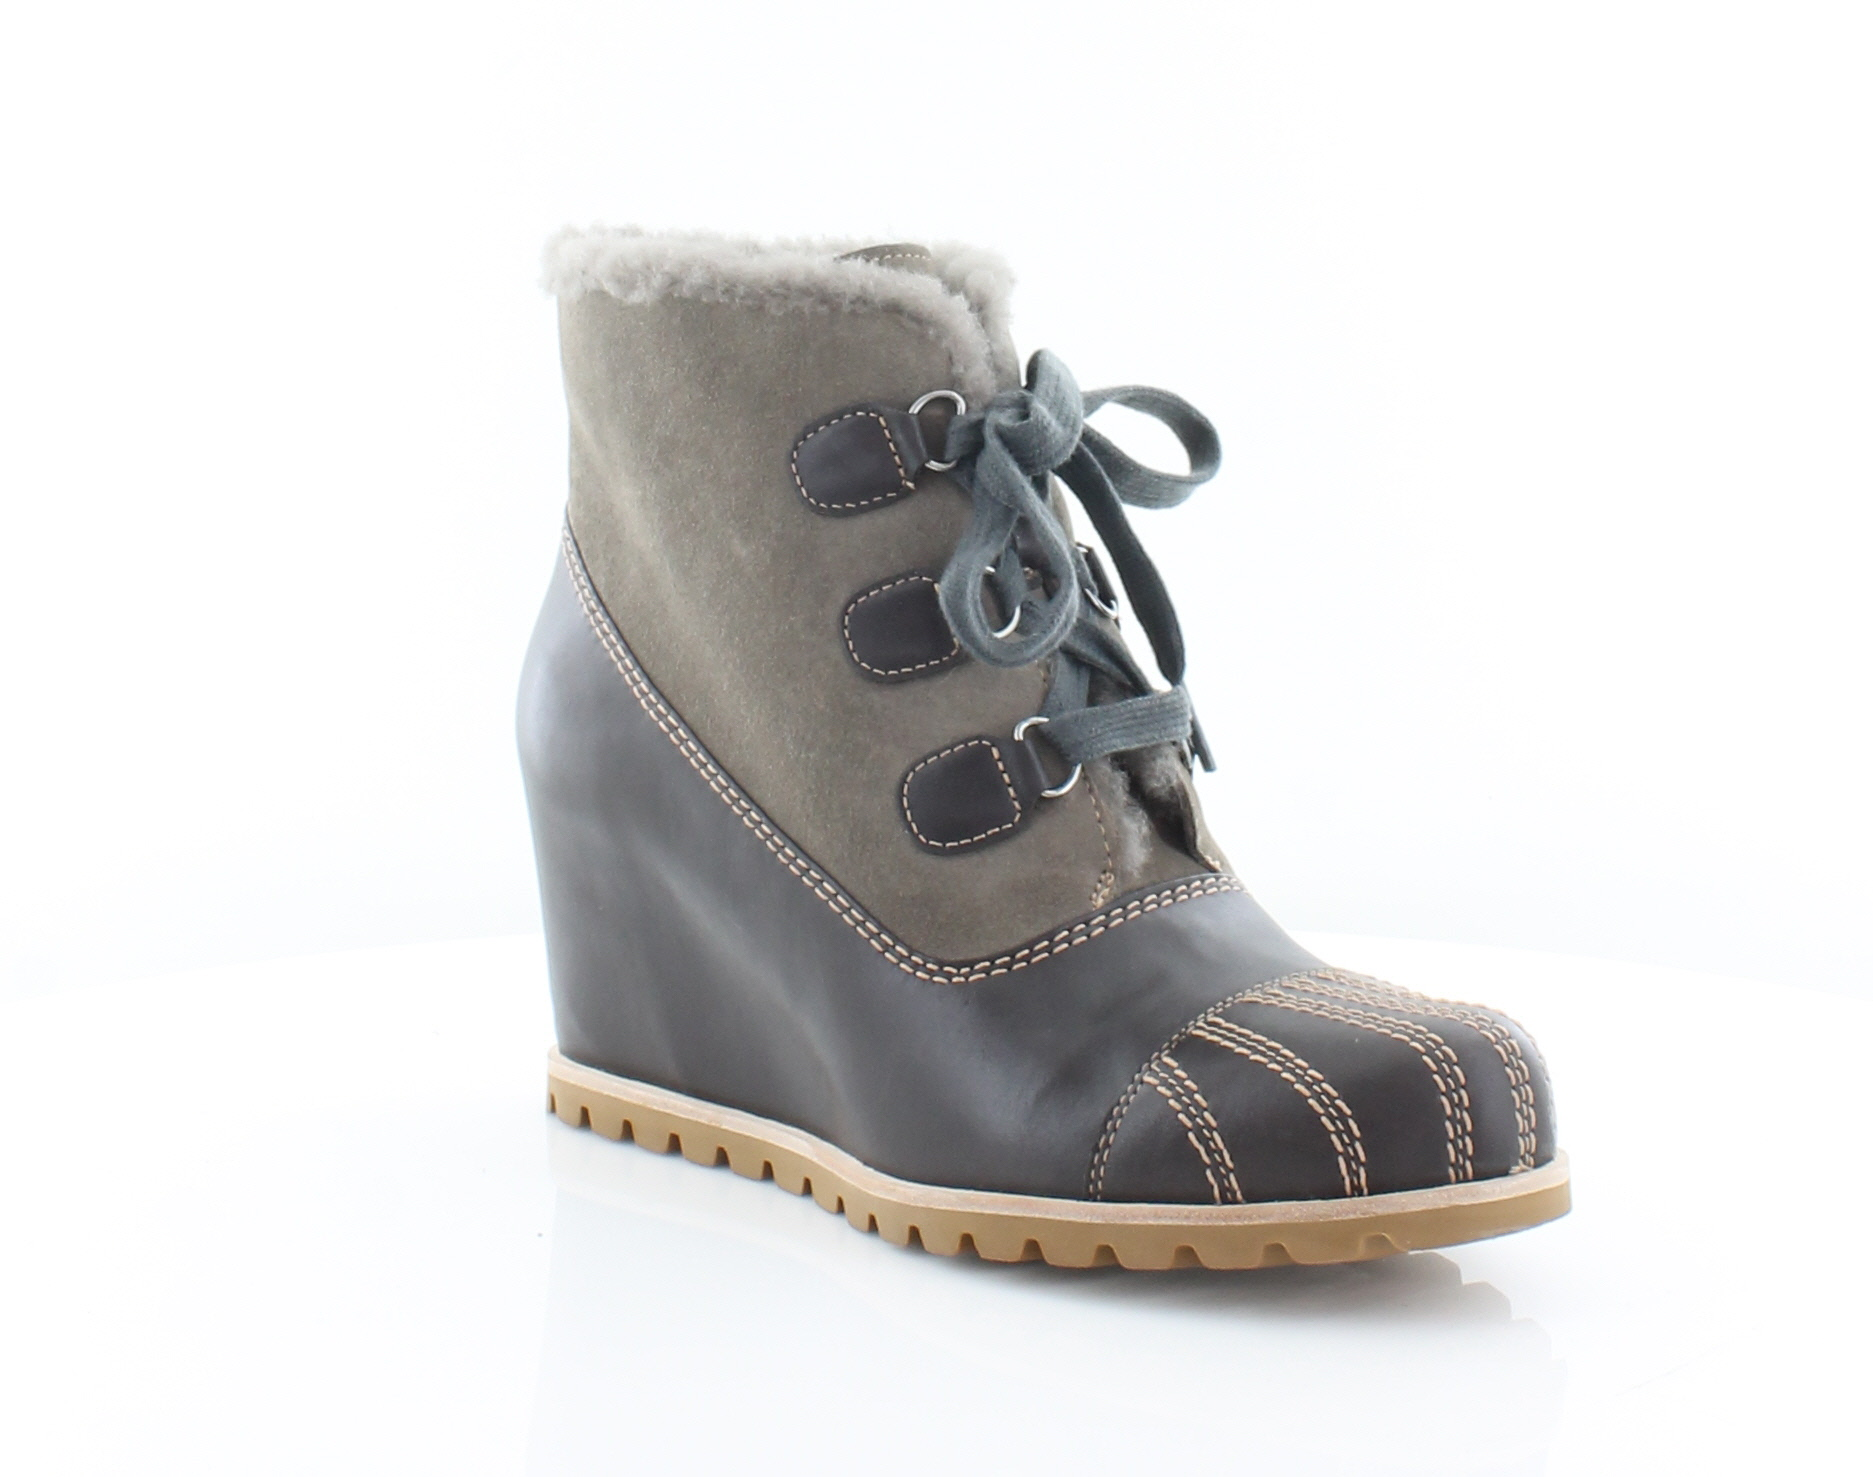 fd37b24afe0 Details about UGG New Alasdair Brown Womens Shoes Size 10 M Boots MSRP $240